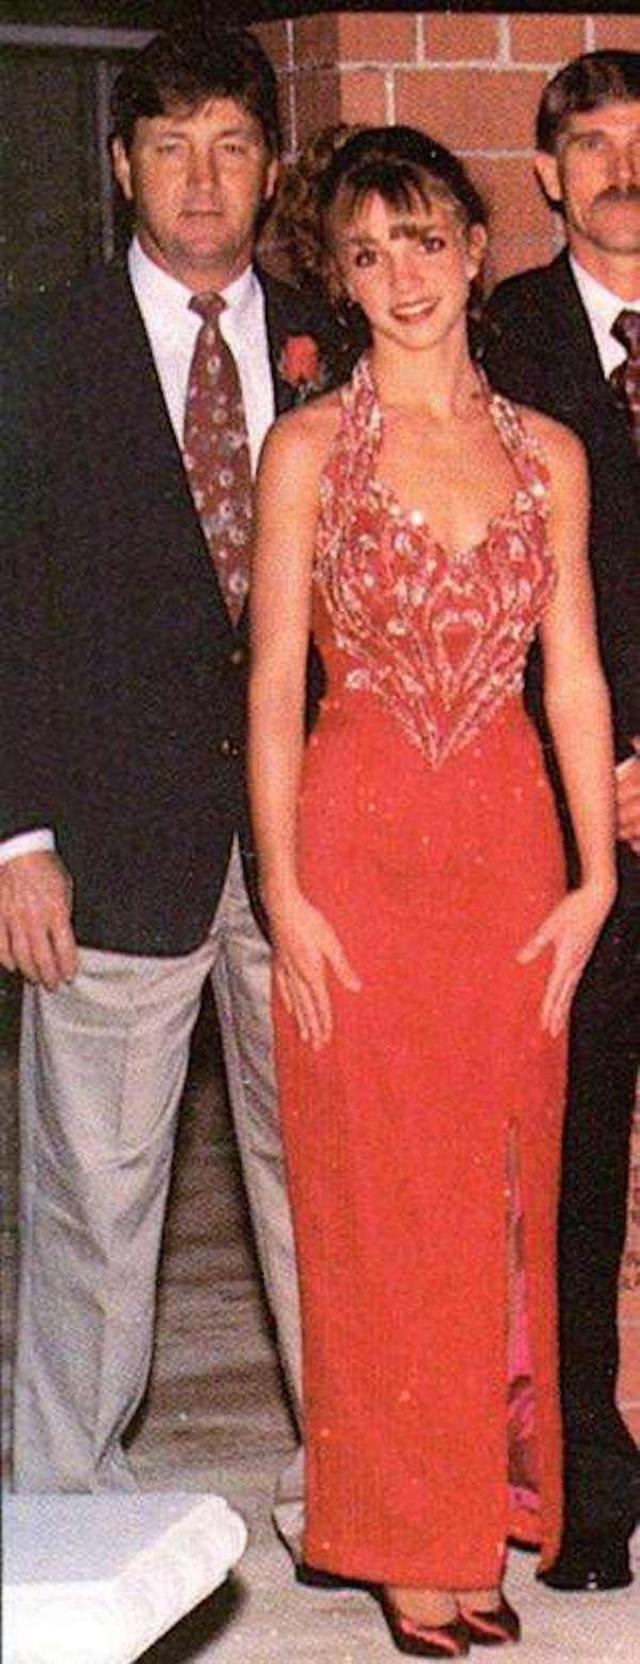 Britney Spears Prom Date Photo-15 Rare Unseen Celebrity Prom Photos